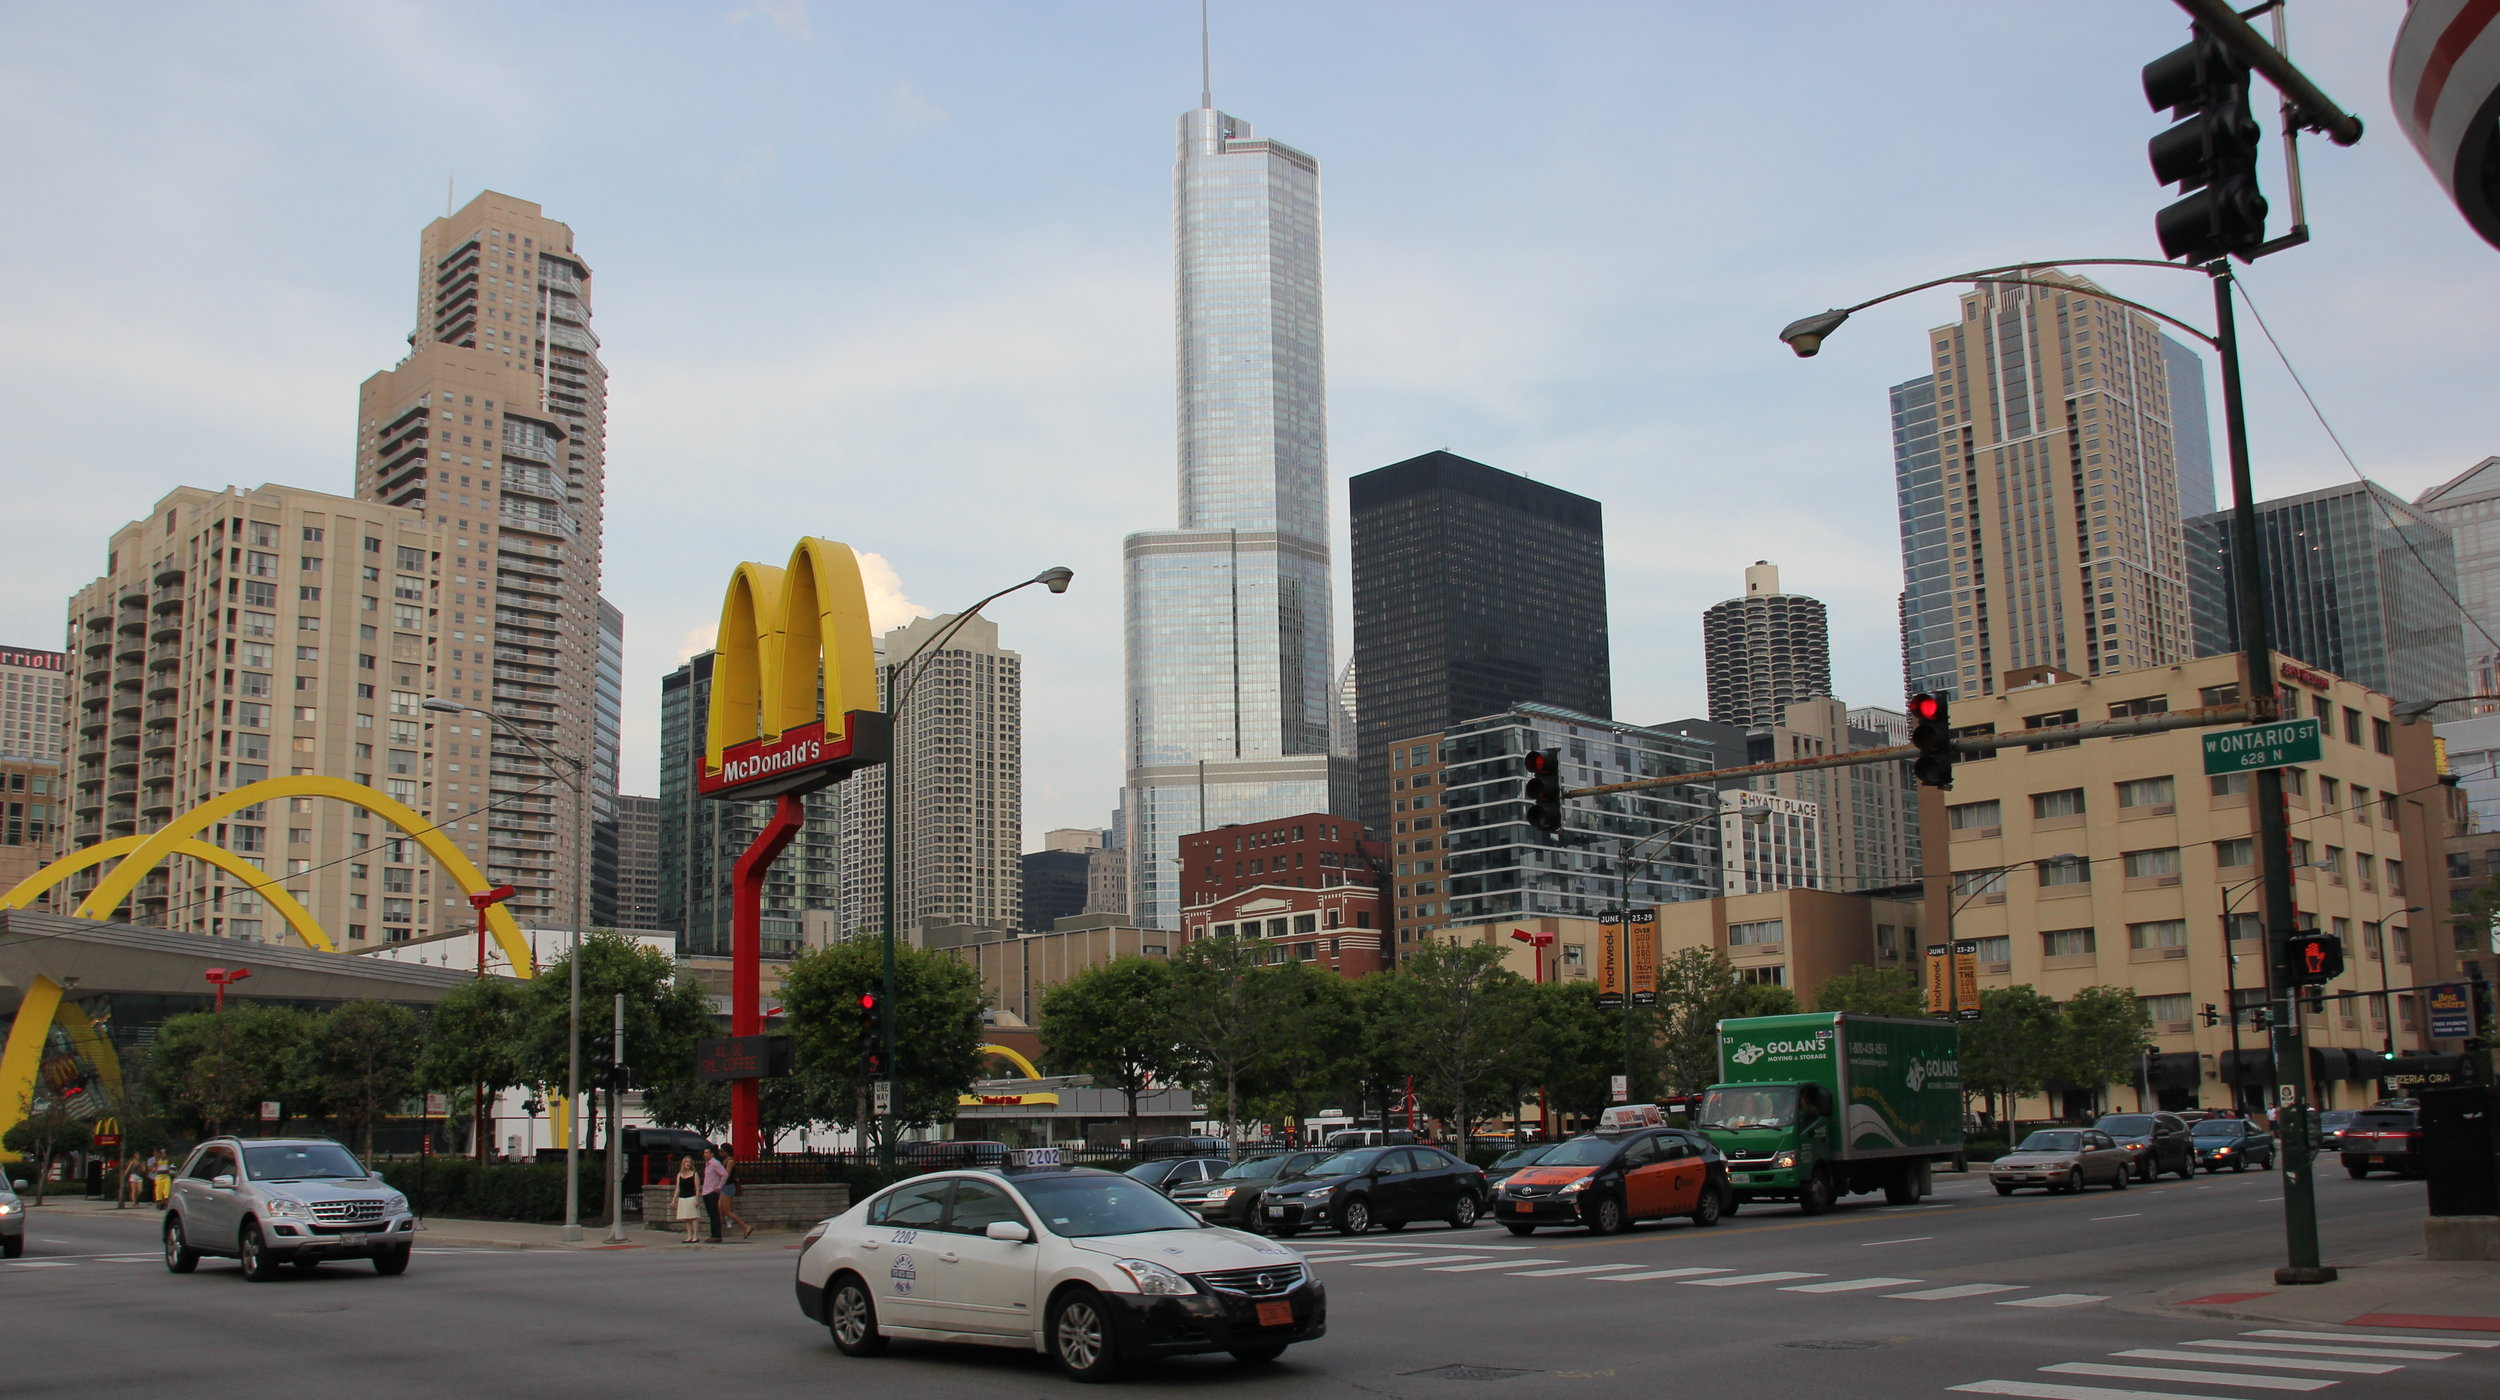 Busy intersections and modern high rises define River North.